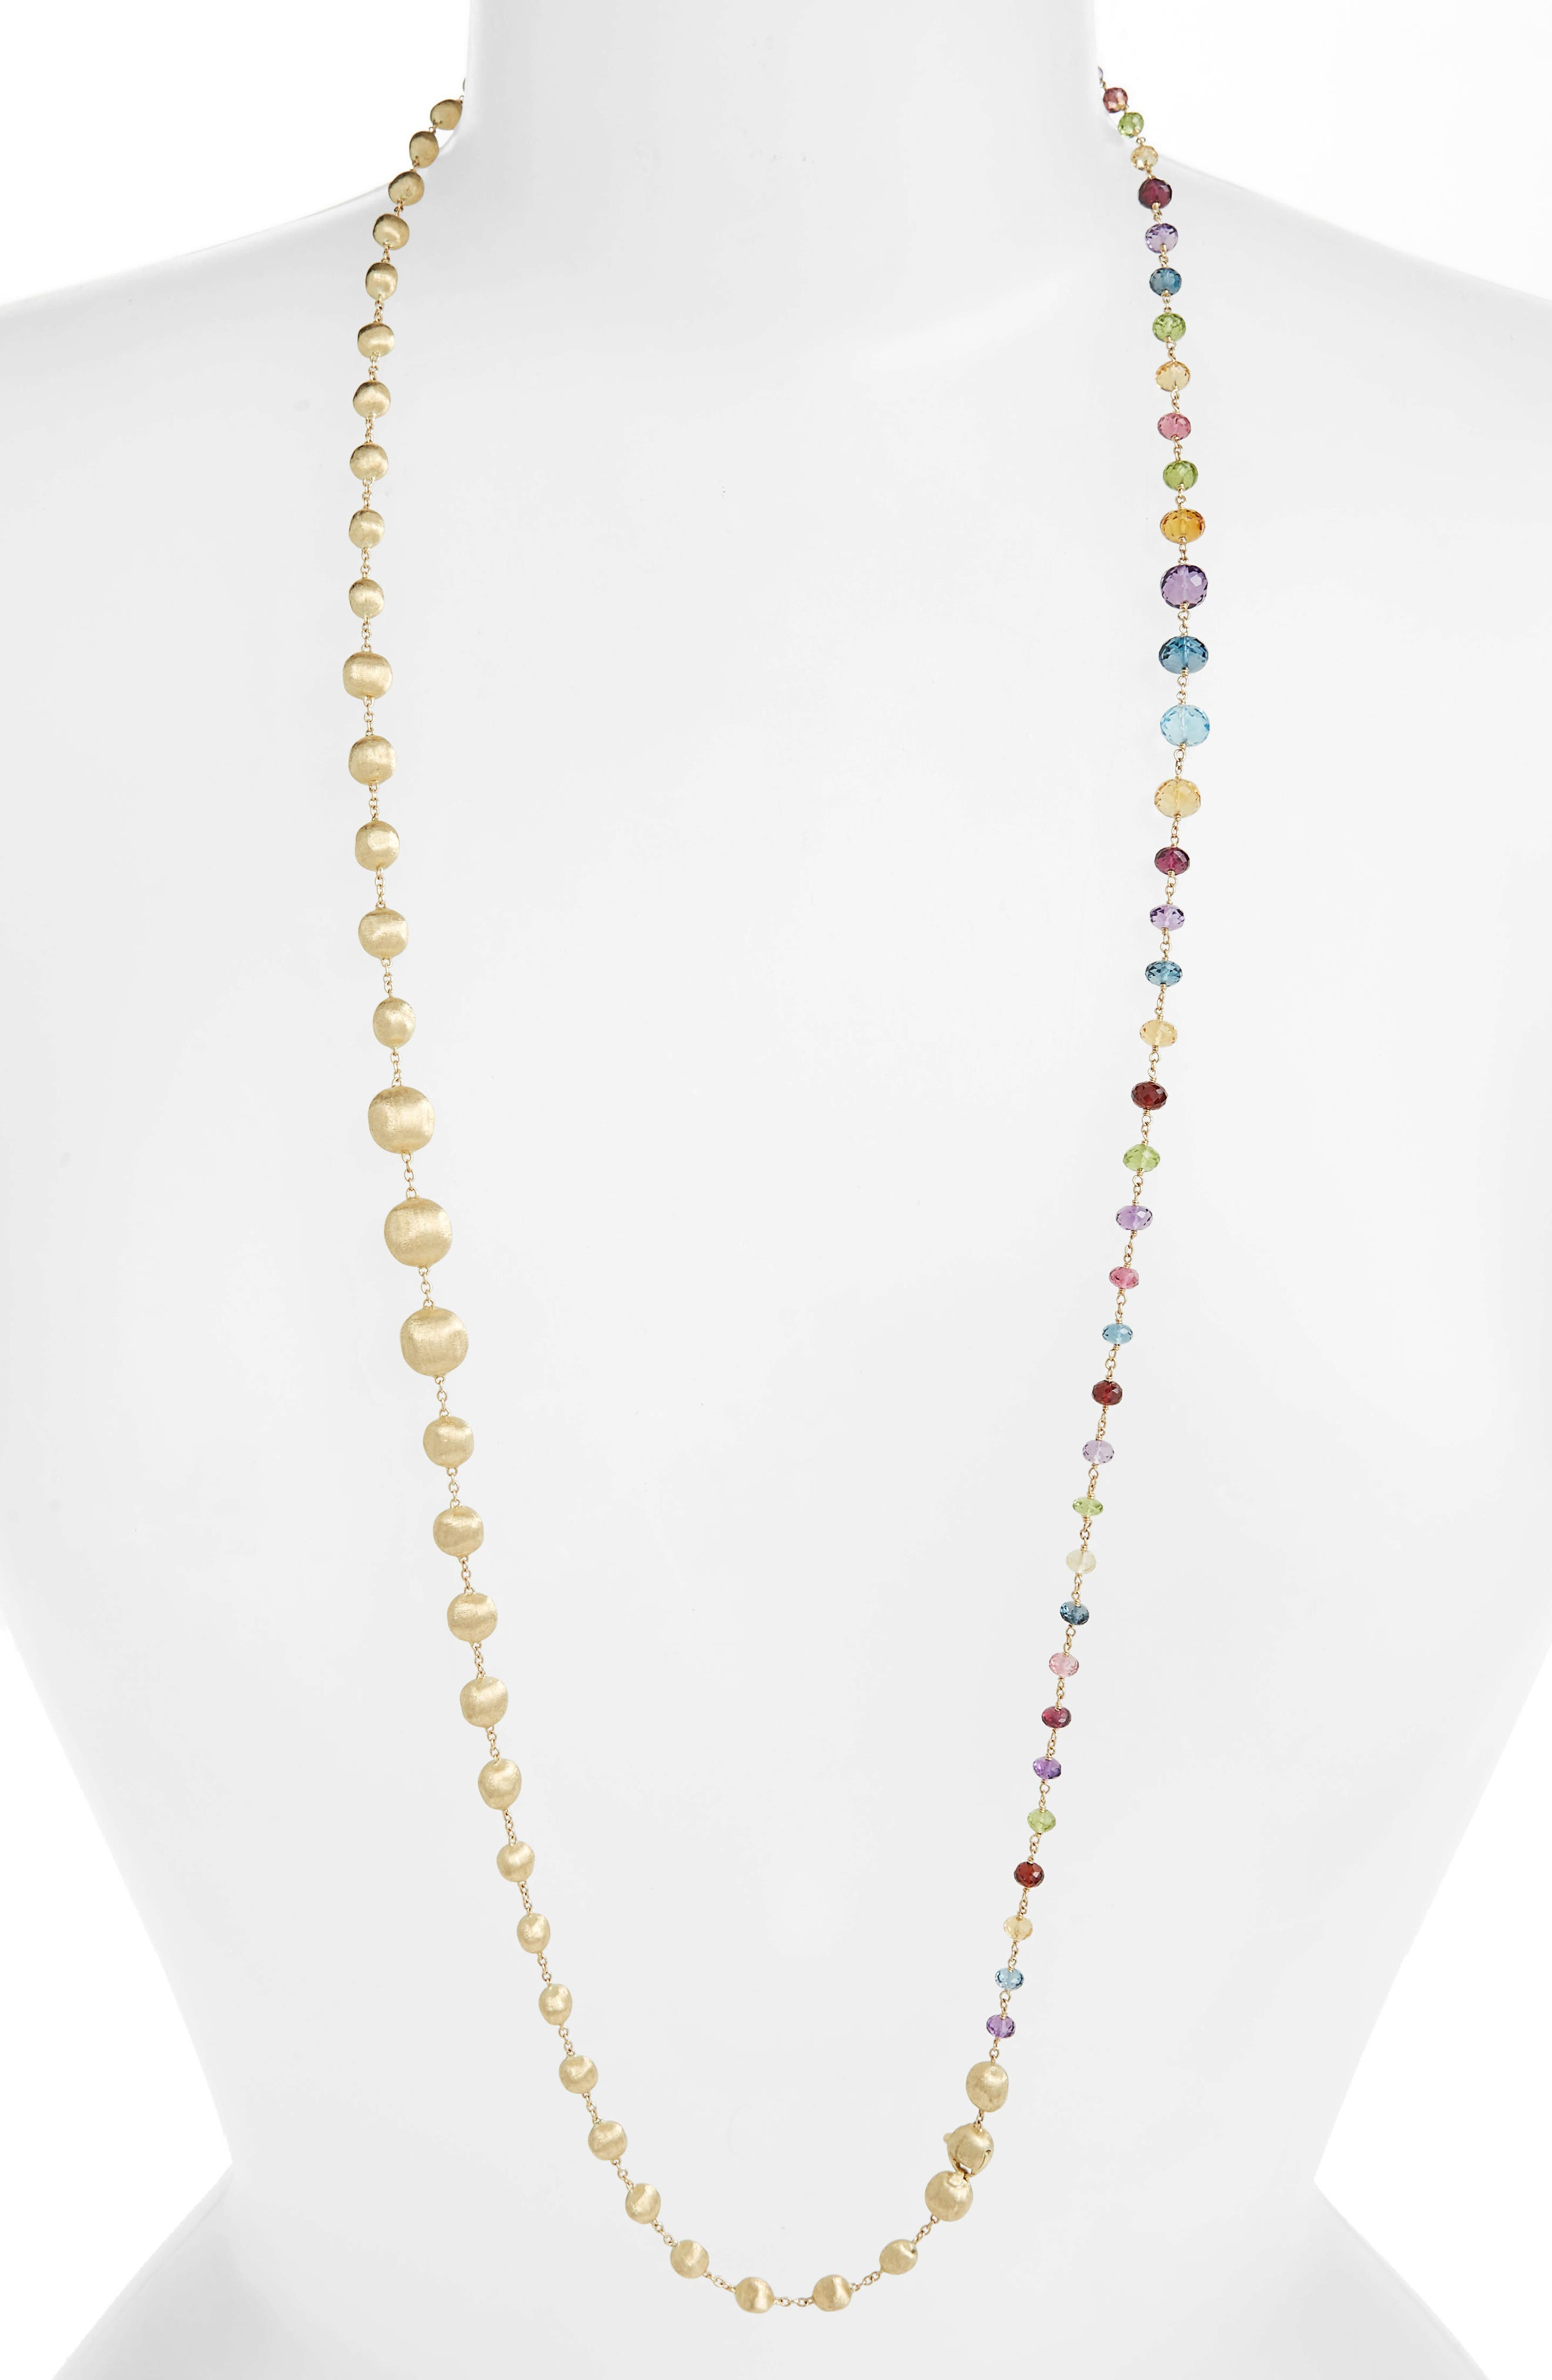 Africa Semiprecious Stone Long Strand Necklace,                             Main thumbnail 1, color,                             YELLOW GOLD